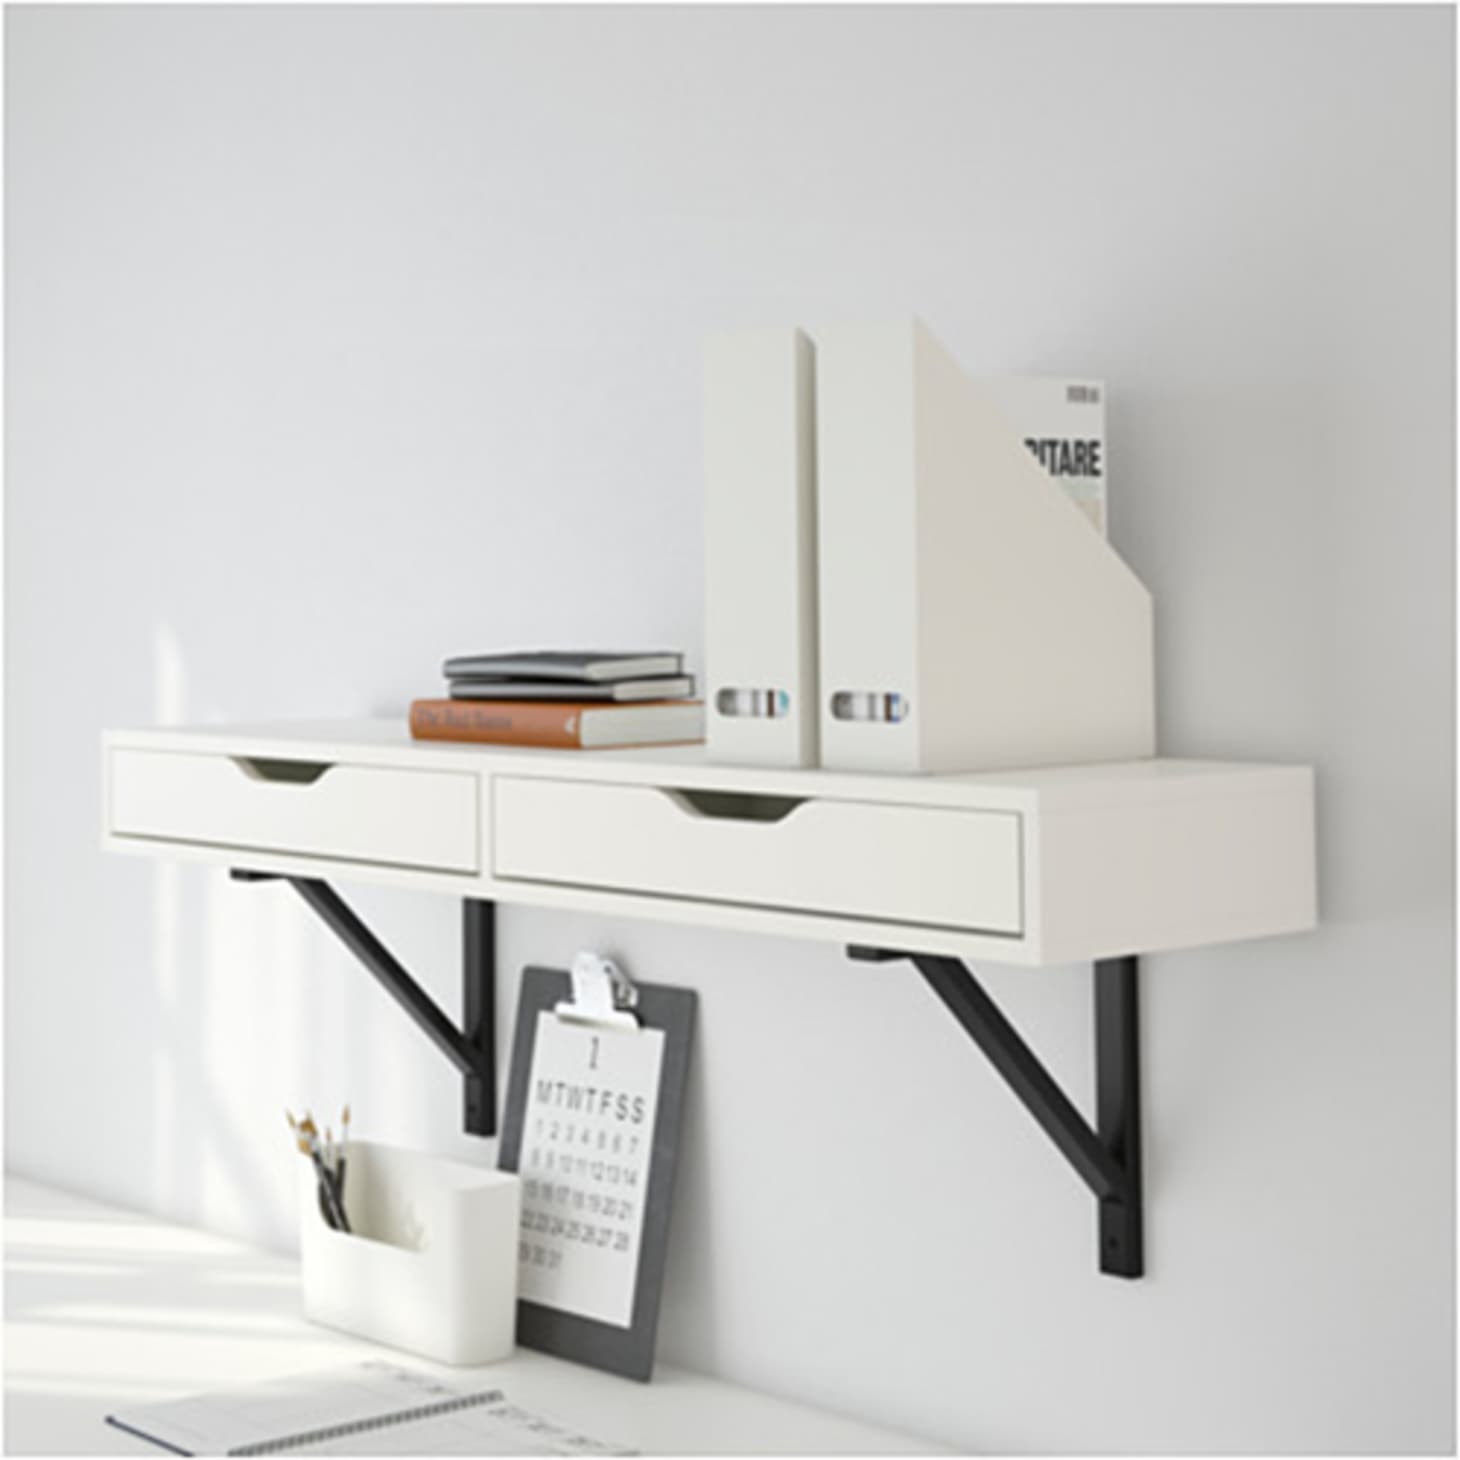 Best Wall Mounted Desks & Tables: 2016 Annual Guide ...